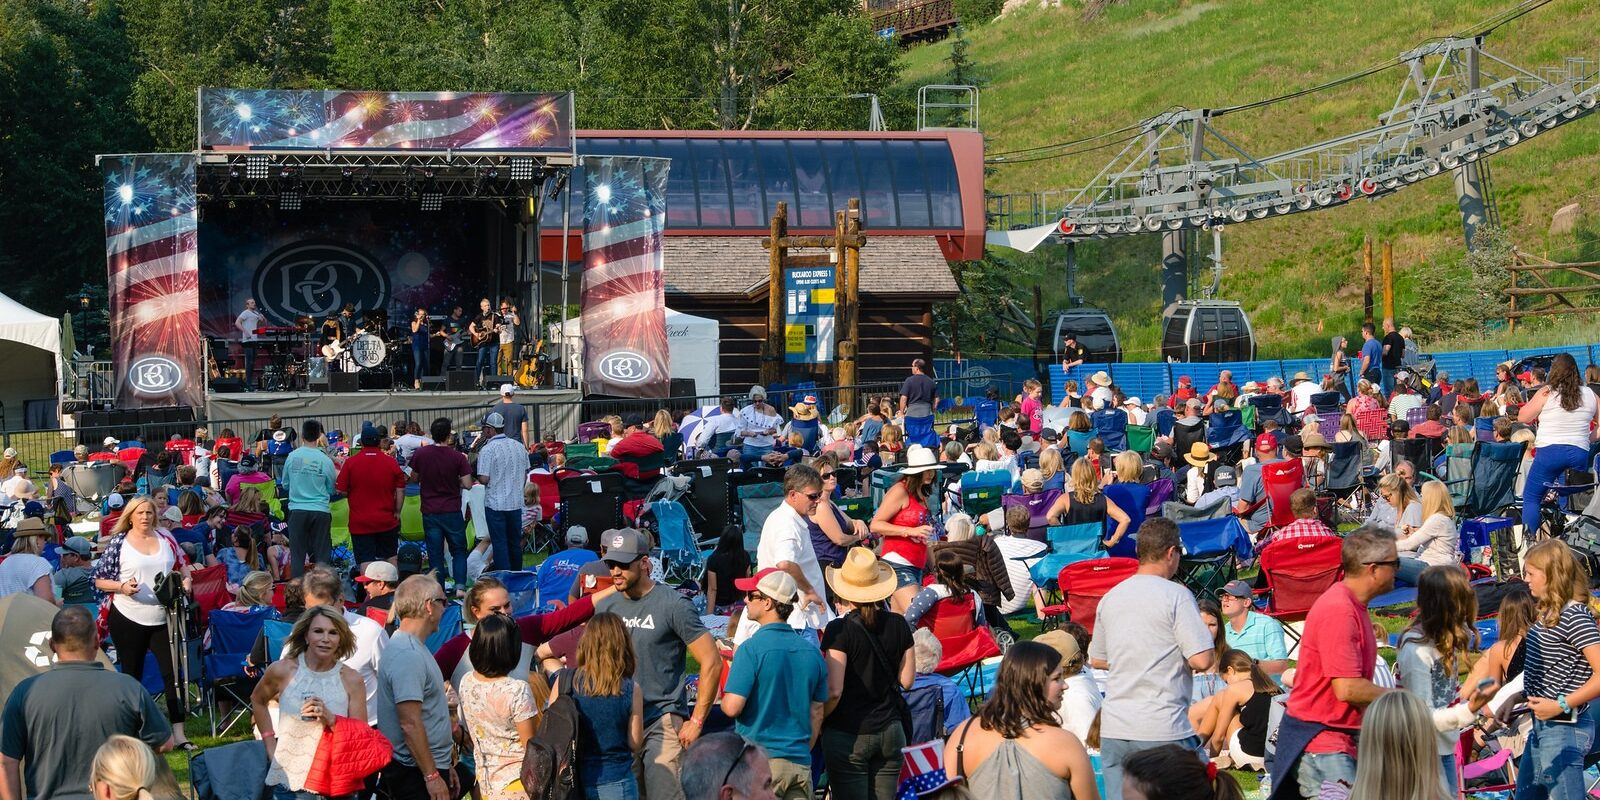 Image of people enjoying July 4th together in Beaver Creek, Colorado